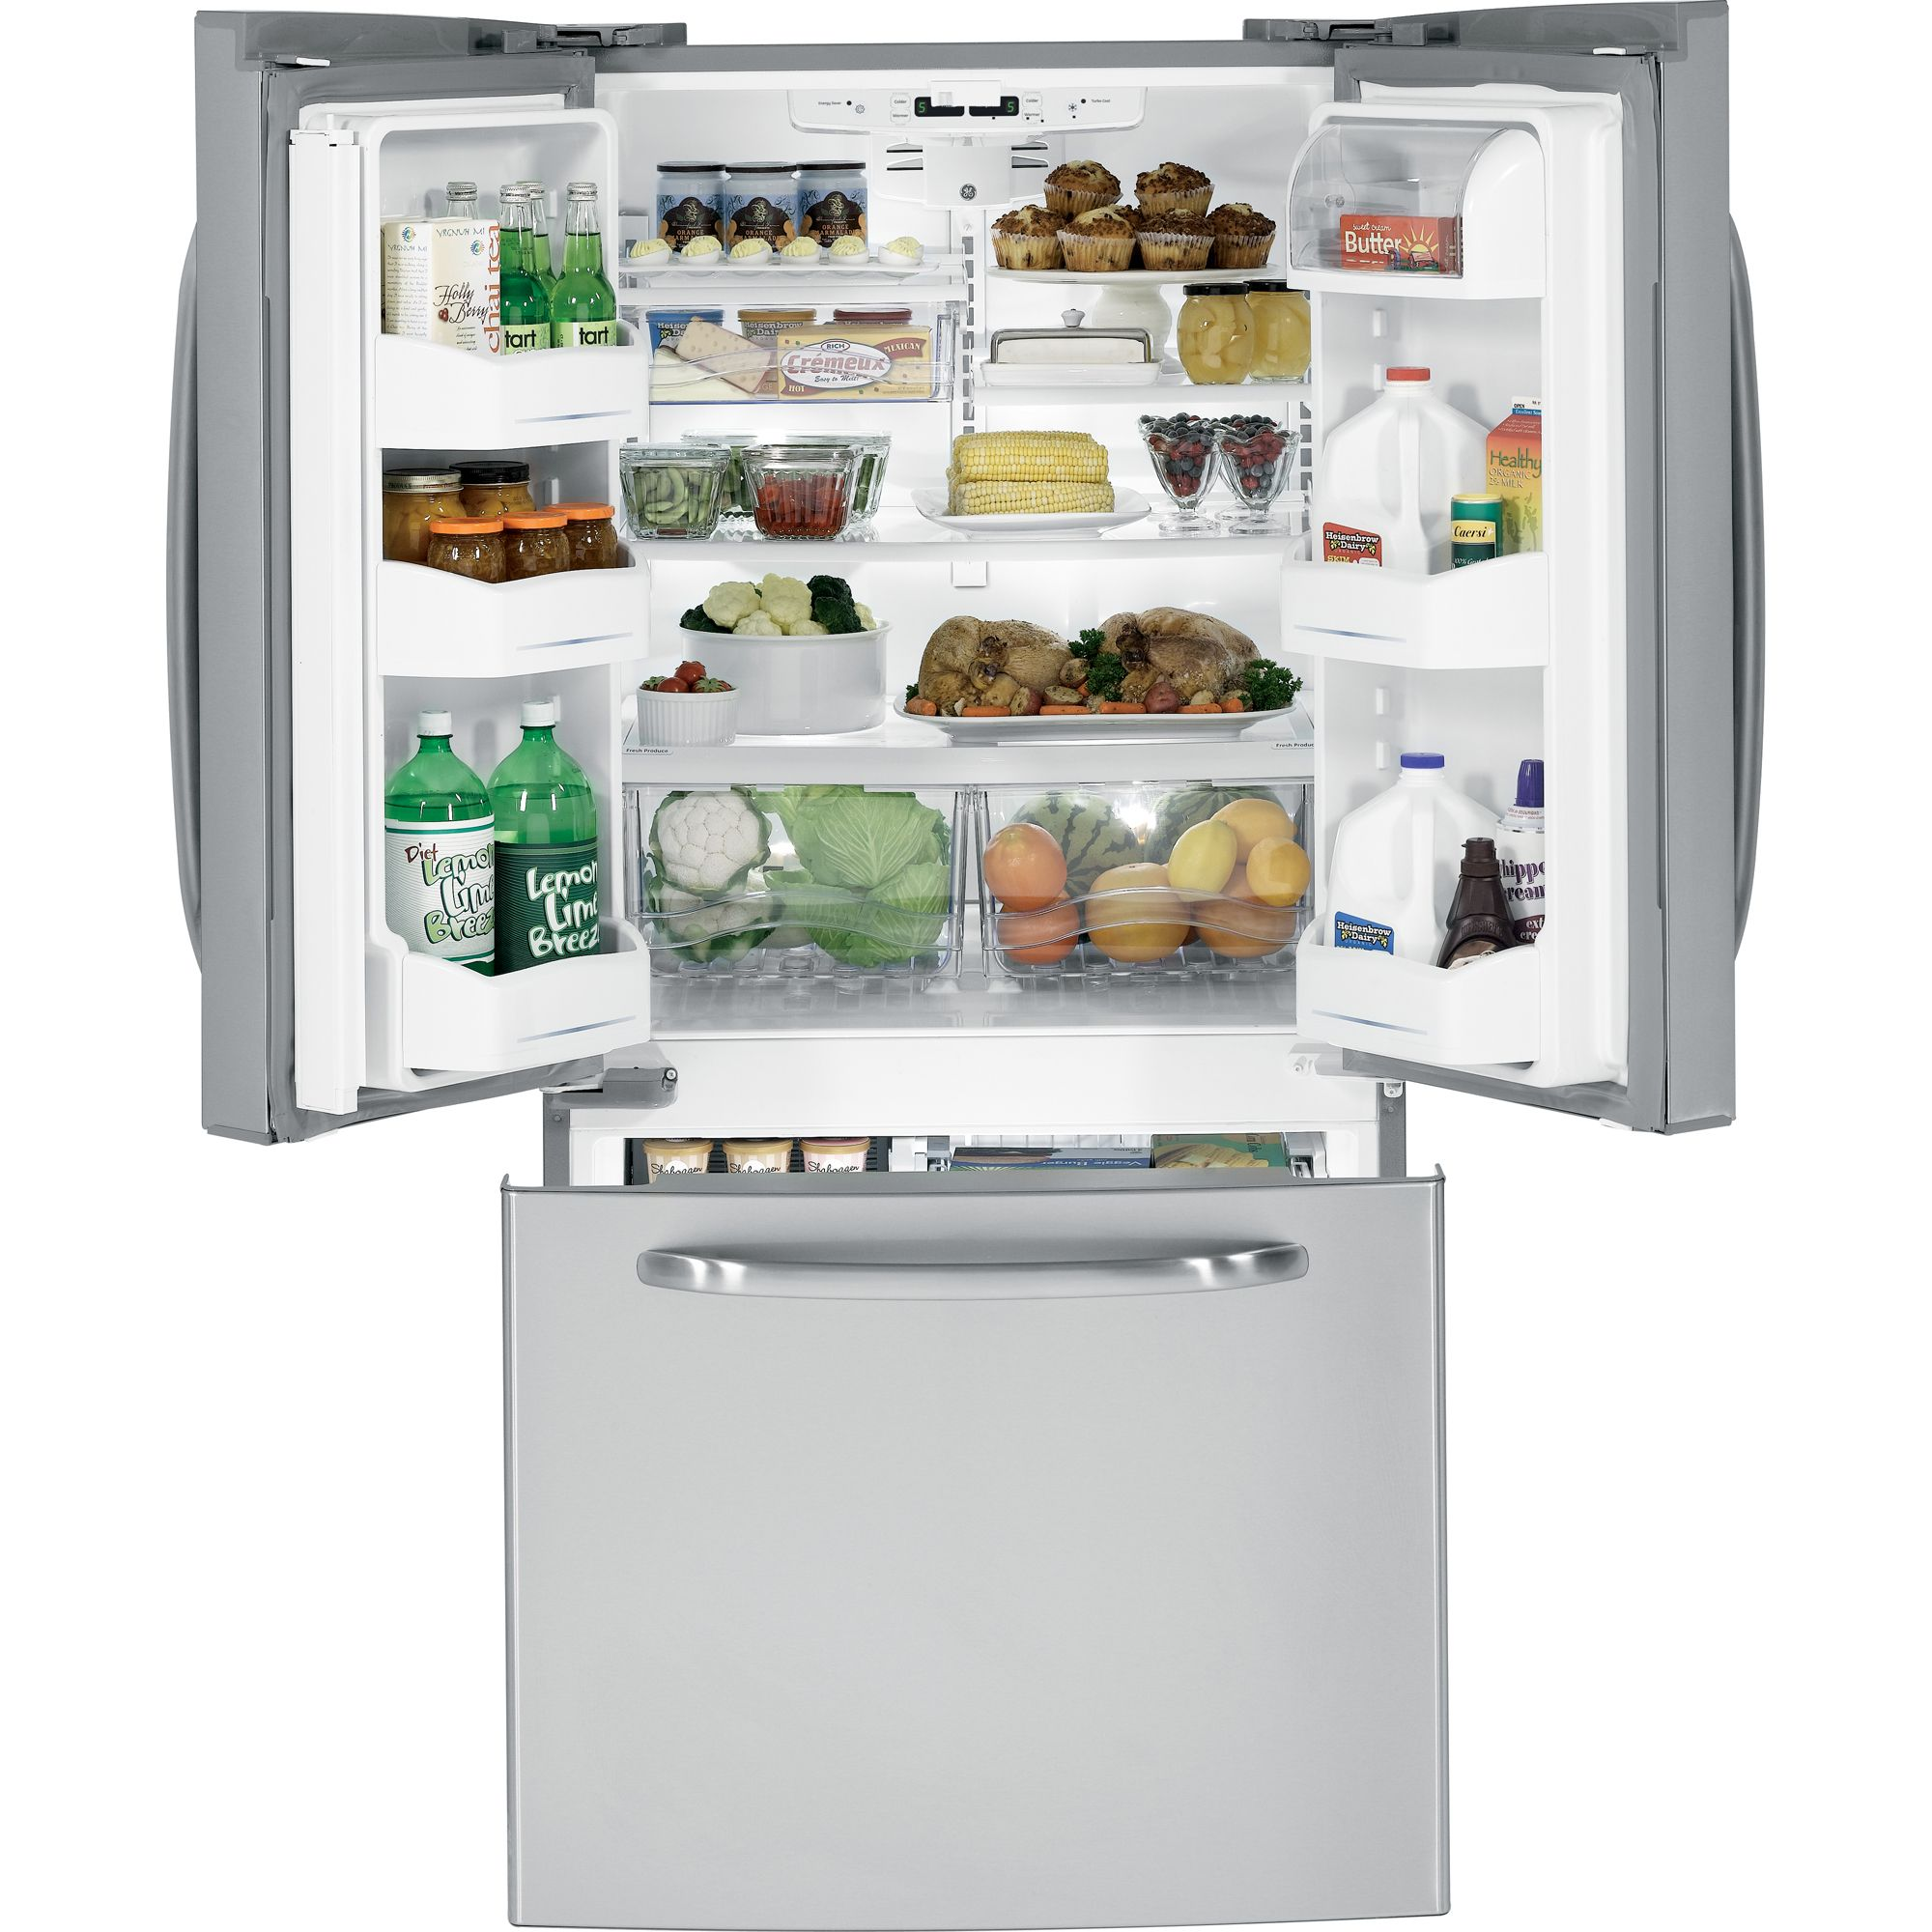 GE 22.0 cu. ft. French-Door Bottom-Freezer Refrigerator